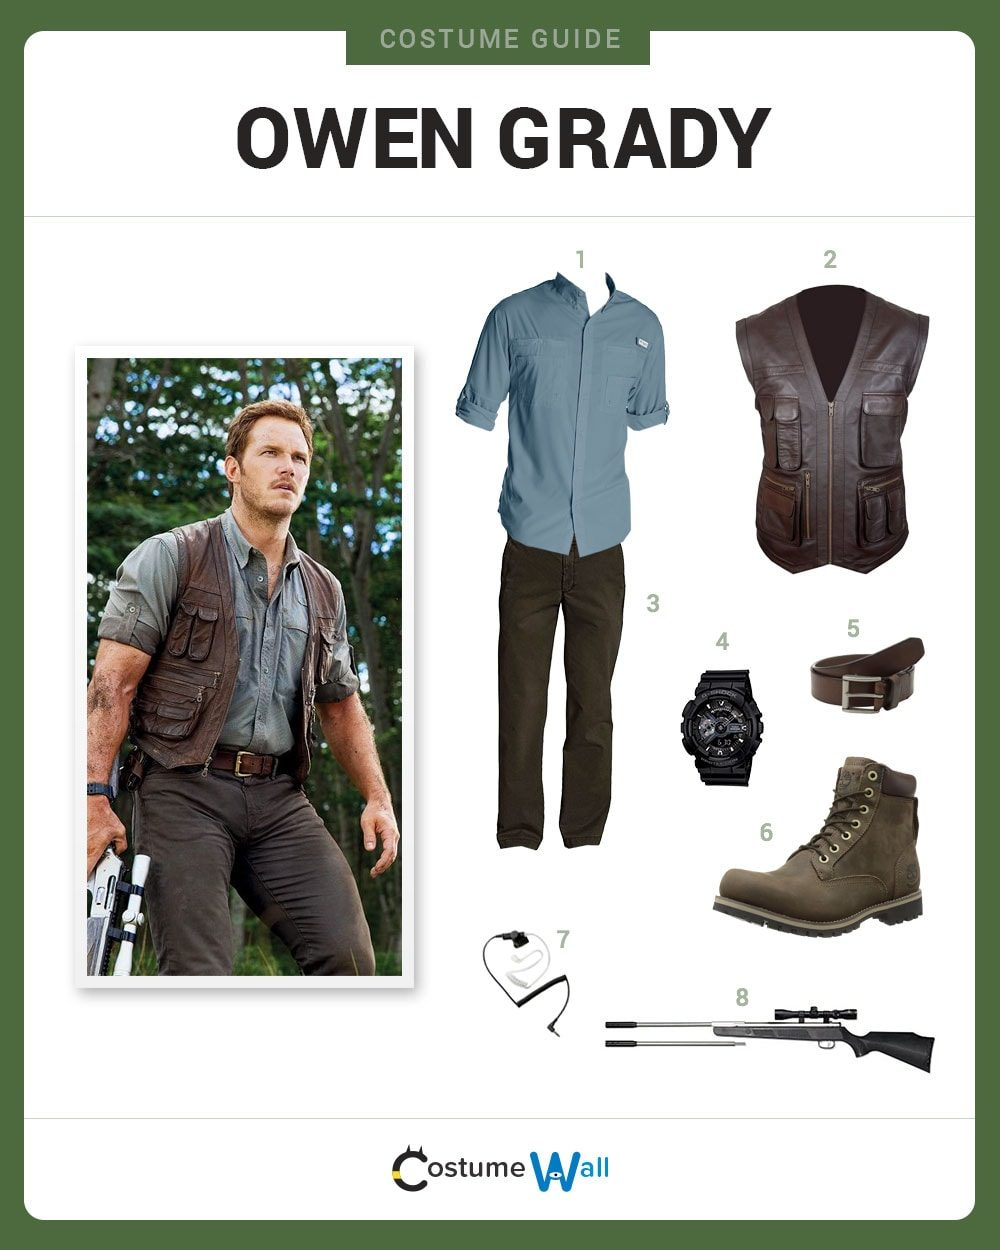 Owen Grady Costume Guide